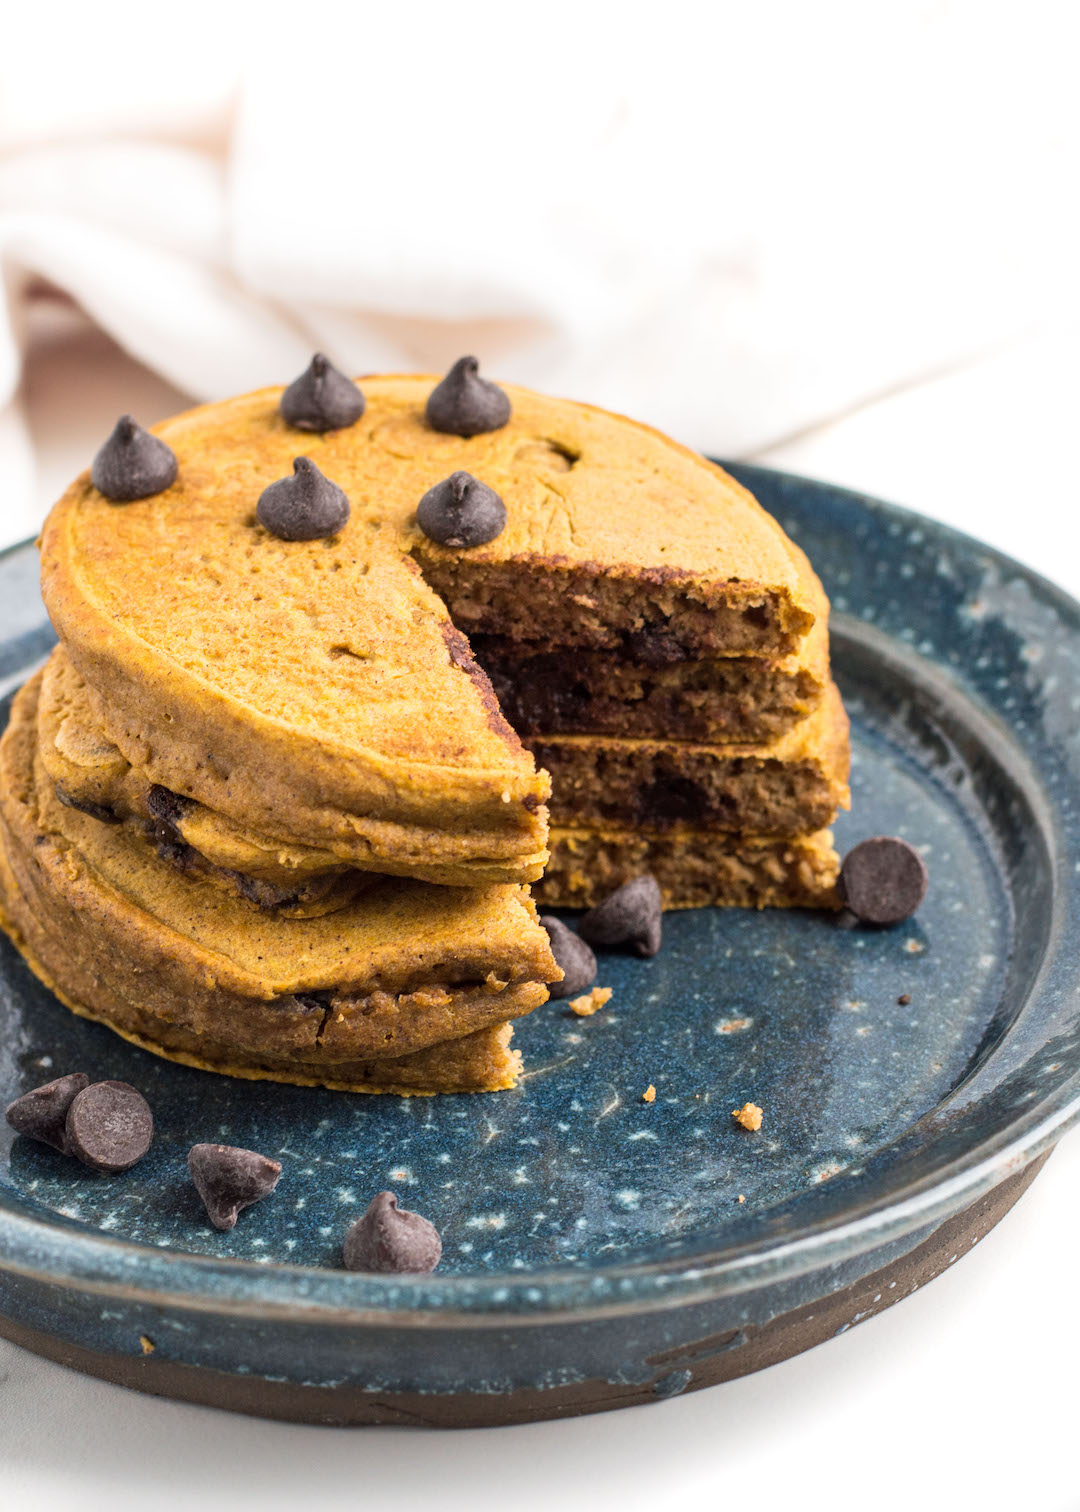 Deliciously fluffy Gluten Free Pumpkin Pancakes made fluffy and light with oat flour, pumpkin puree and lots of chocolate chips. These EASY one-bowl pancakes are perfect for a lazy weekend brunch or breakfast all week long.